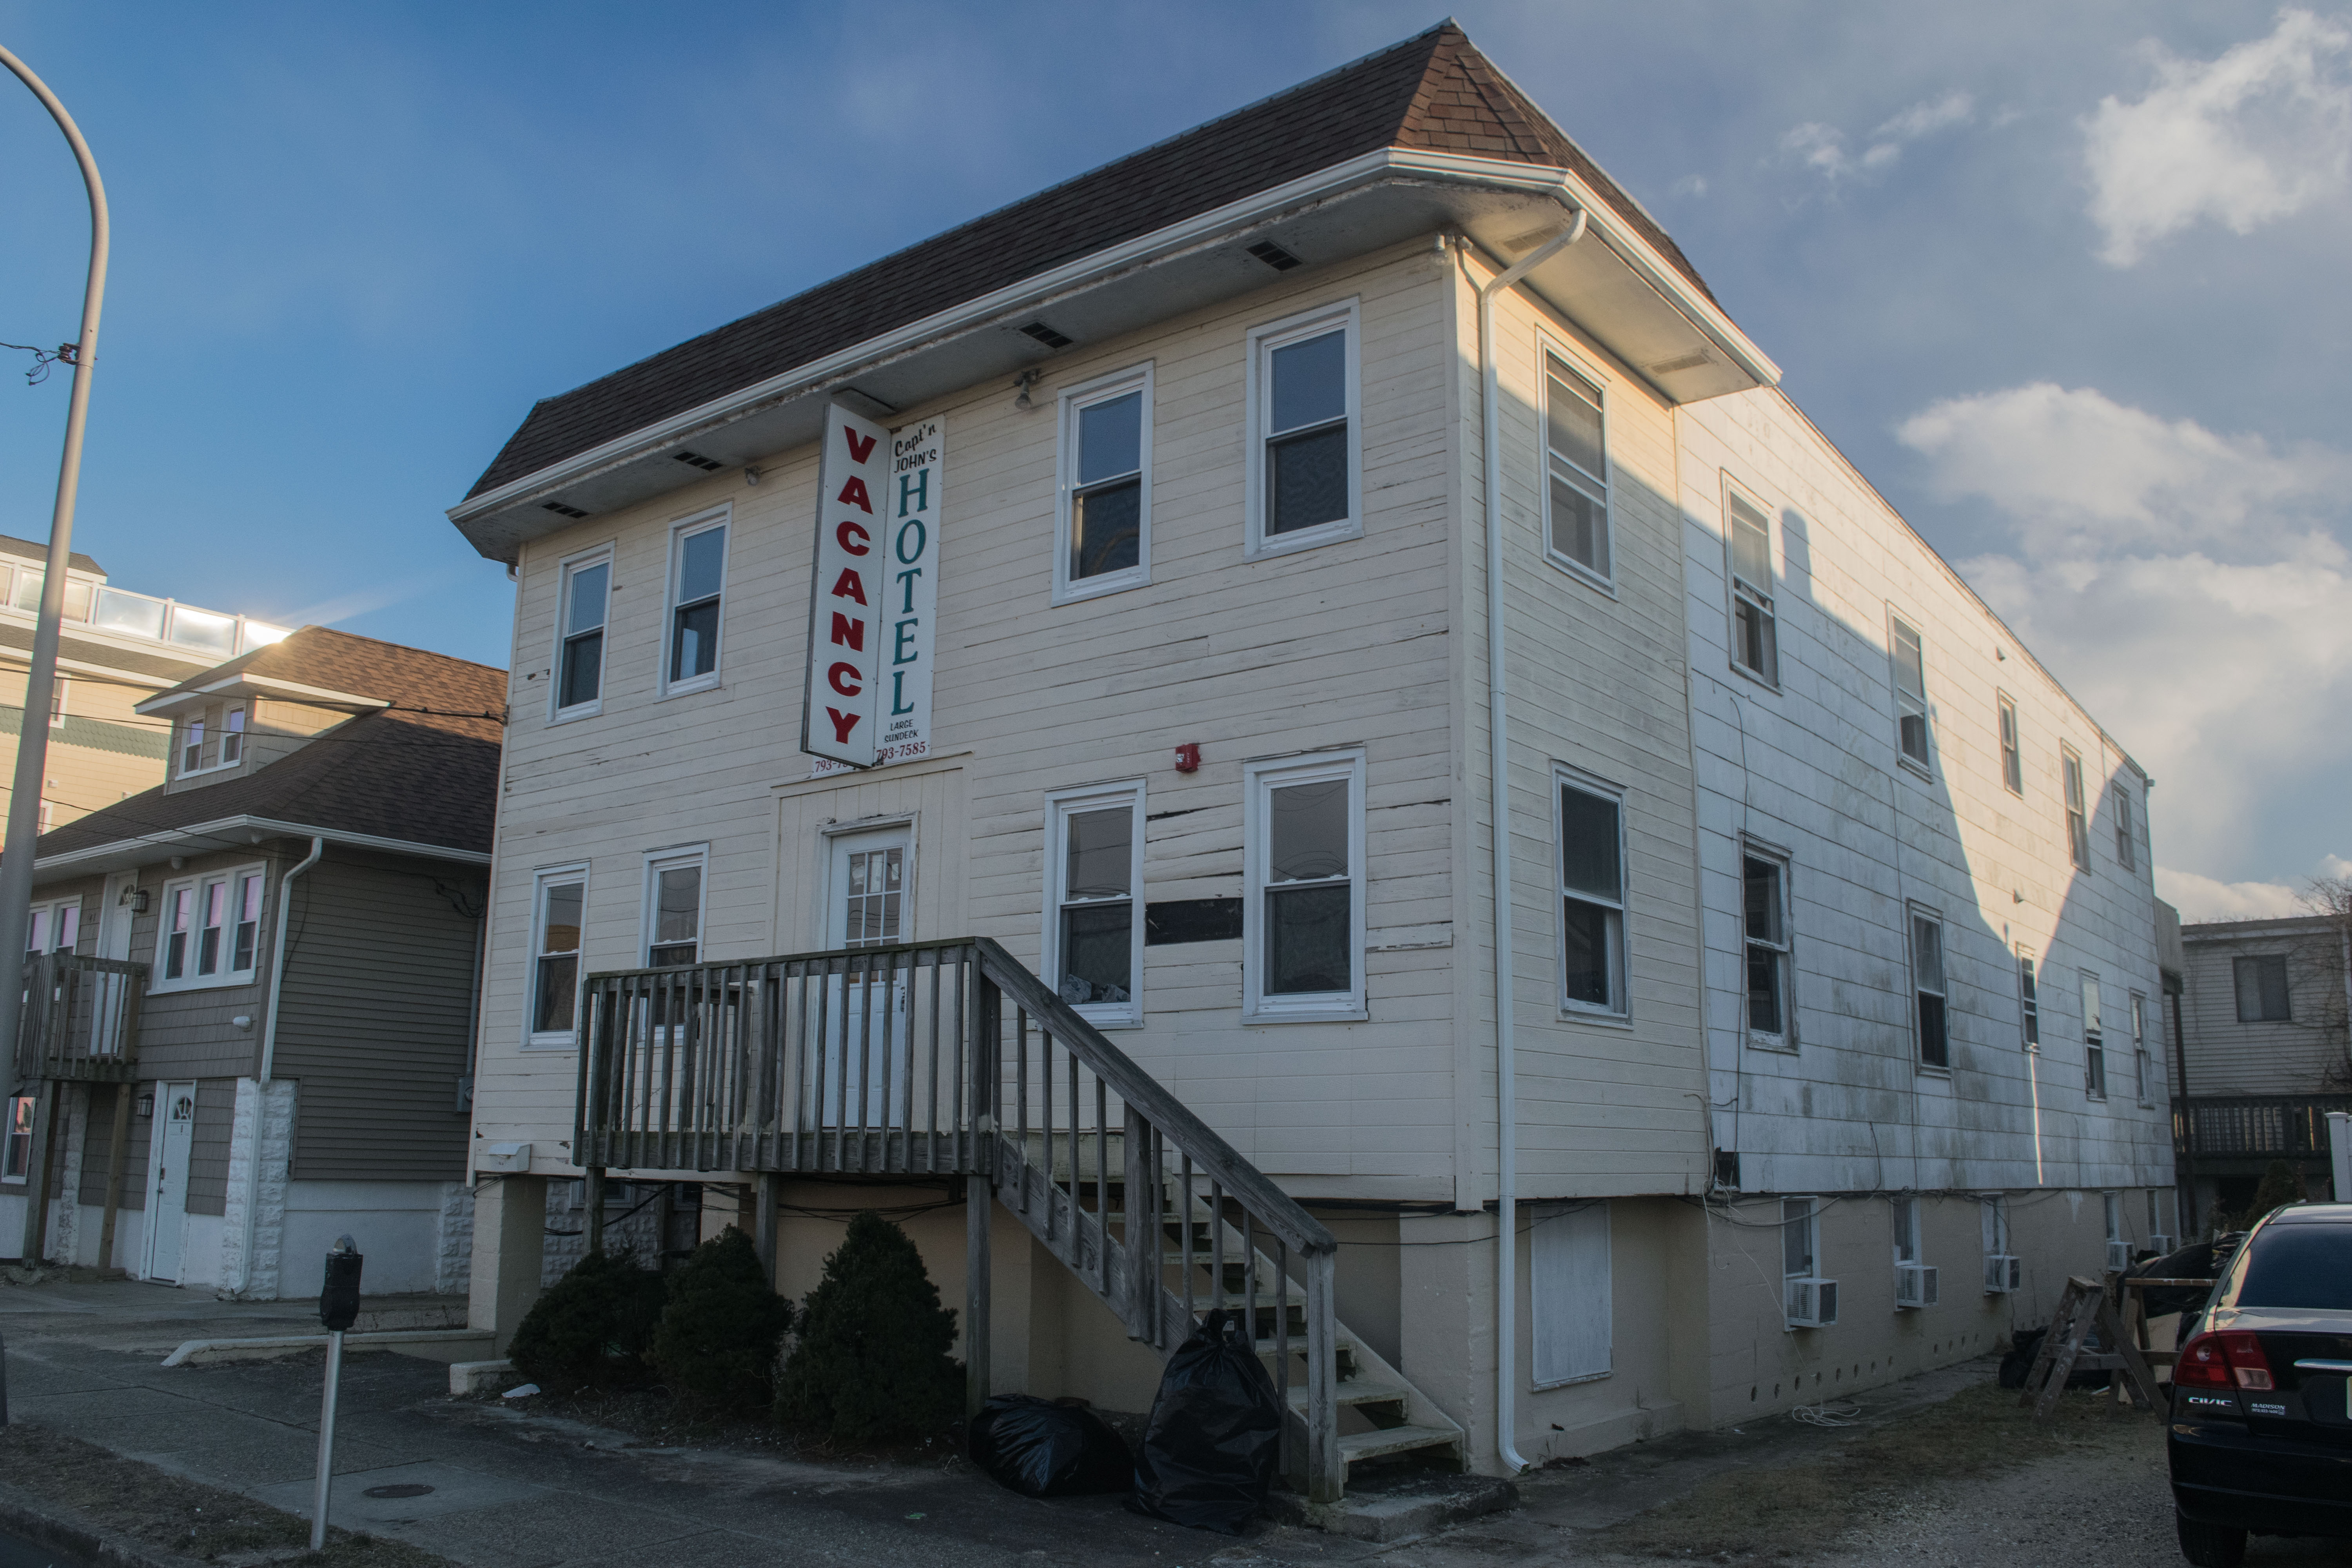 A rooming house at 45-47 Blaine Avenue in Seaside Heights. (Photo: Daniel Nee)